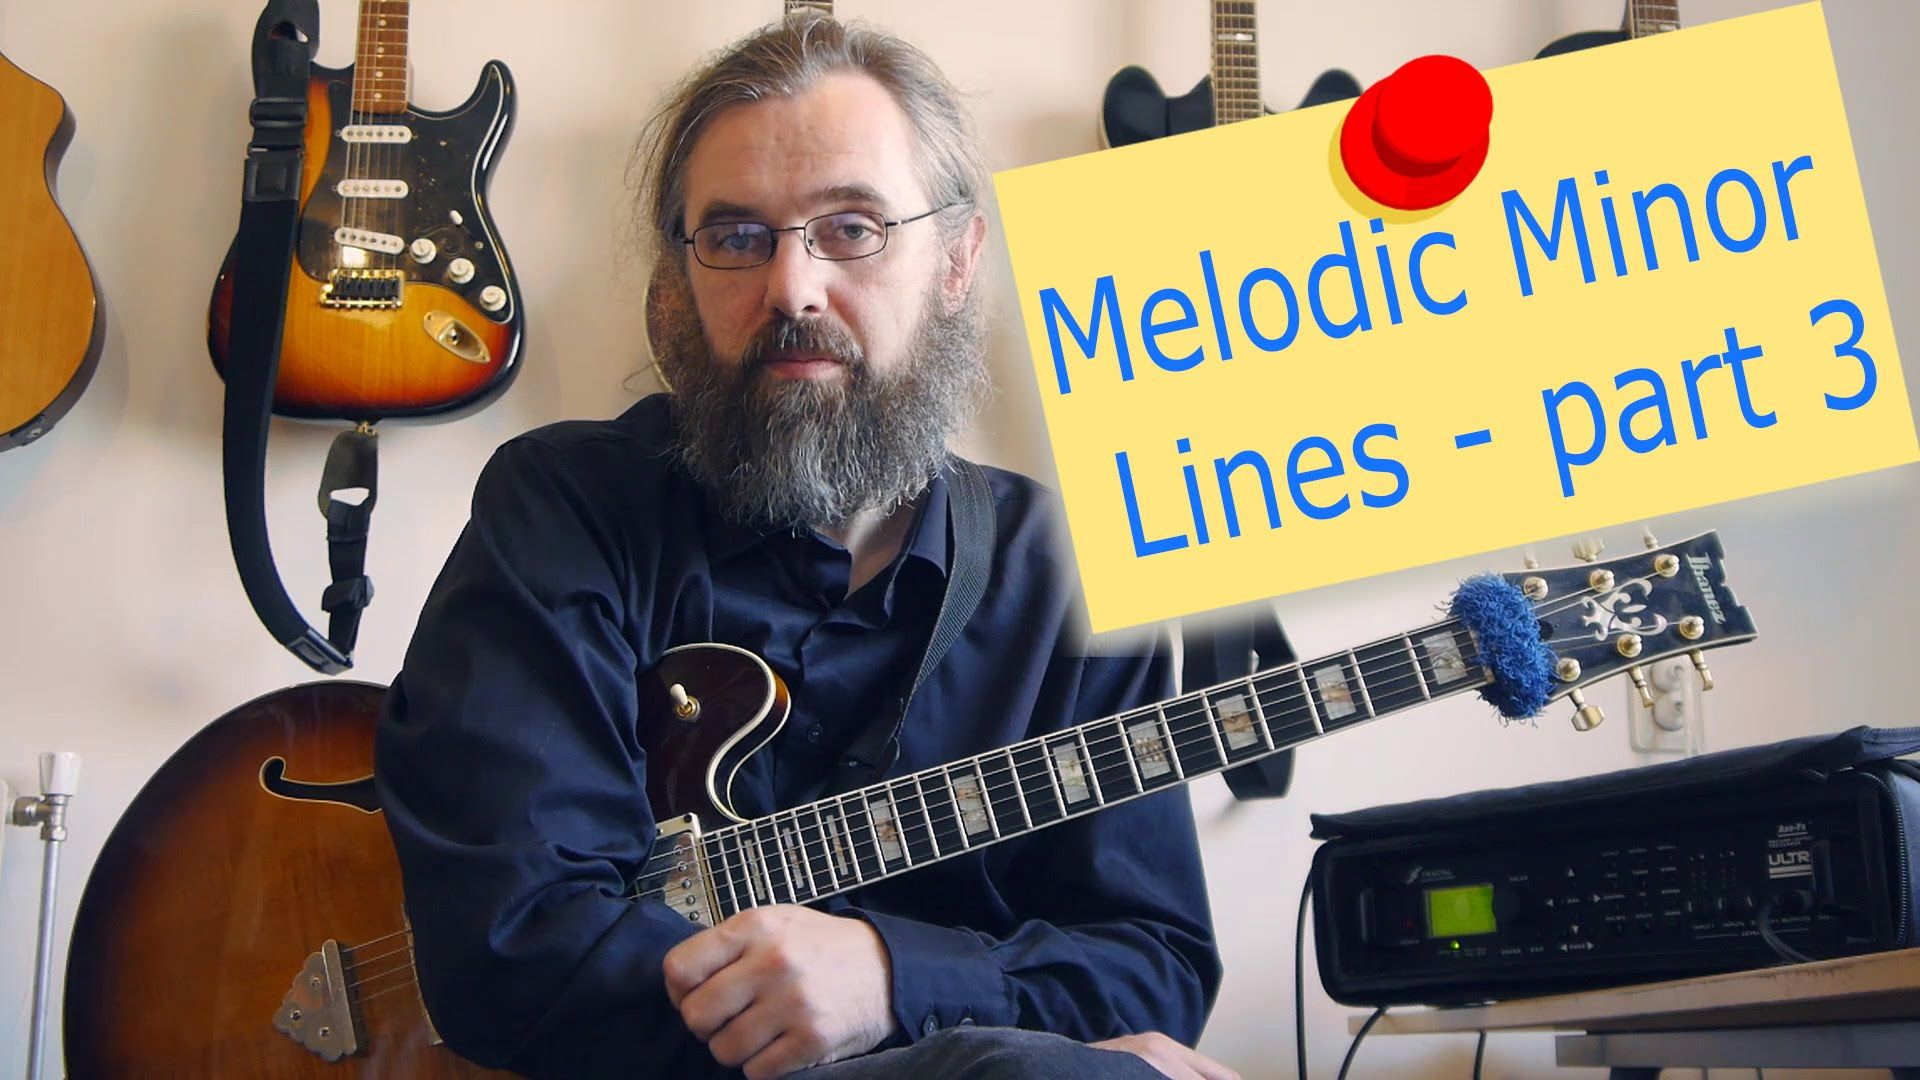 Melodic Minor Lines